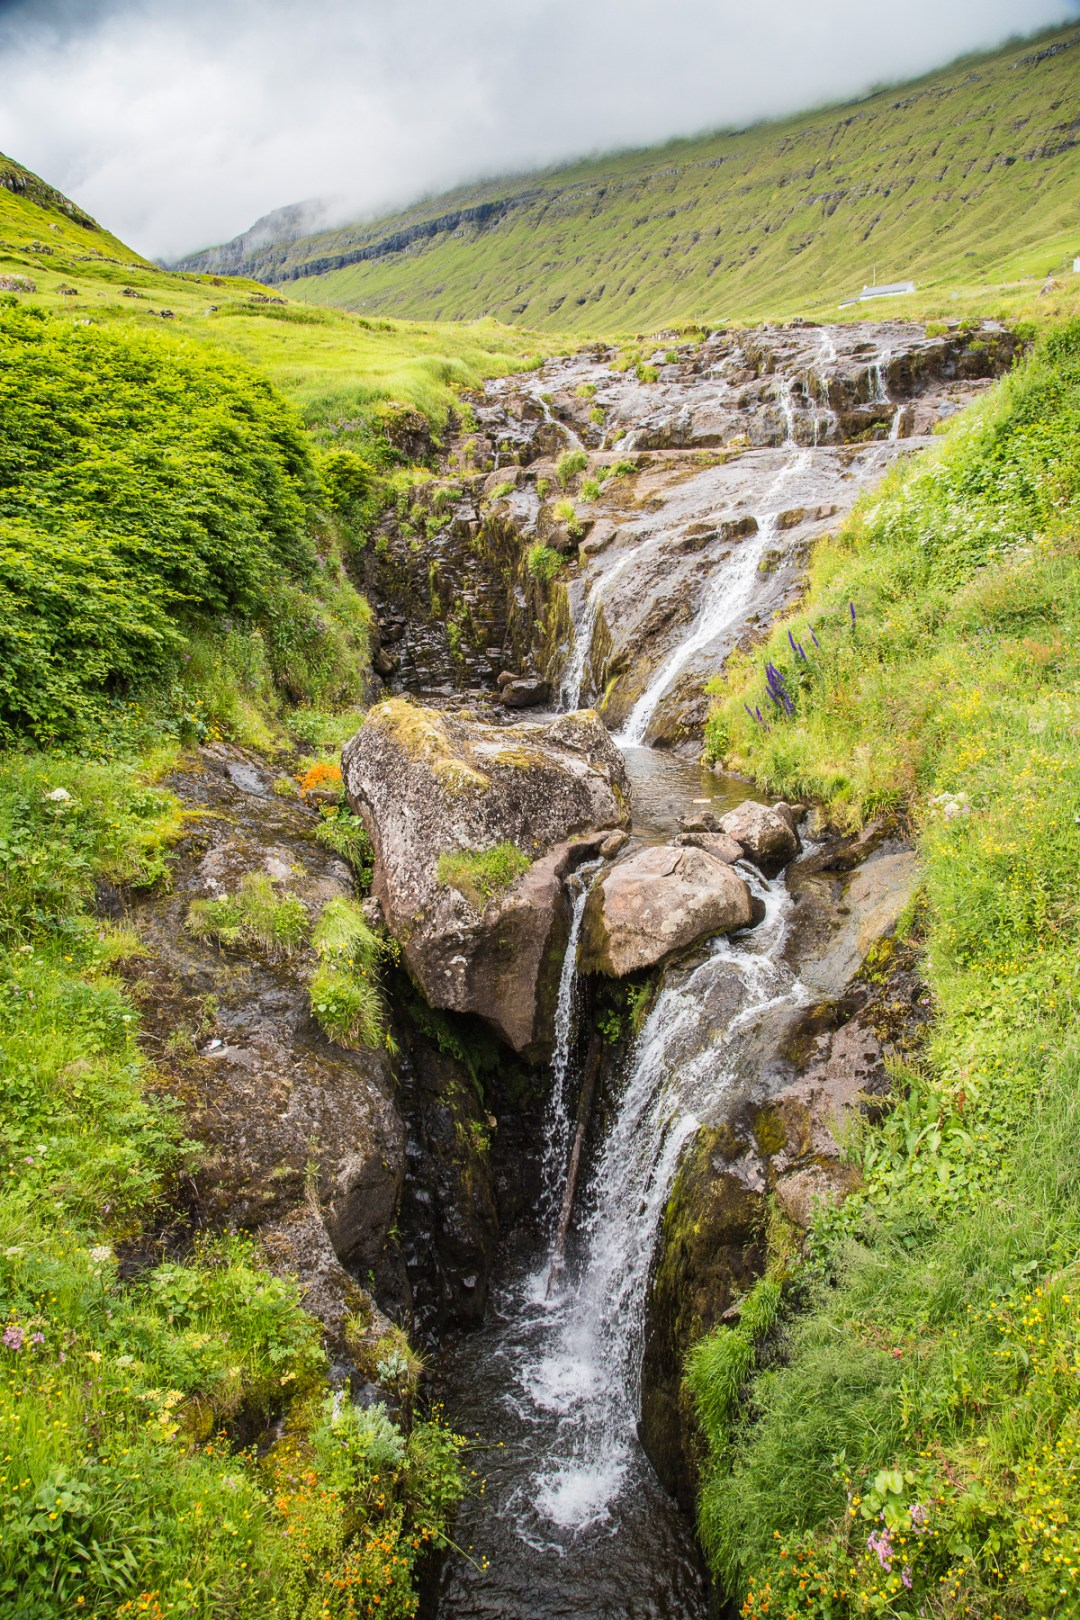 A waterfall just outside Fuglafjørður, Faroe Islands. by Jon Armstrong for Blurbomat.com.